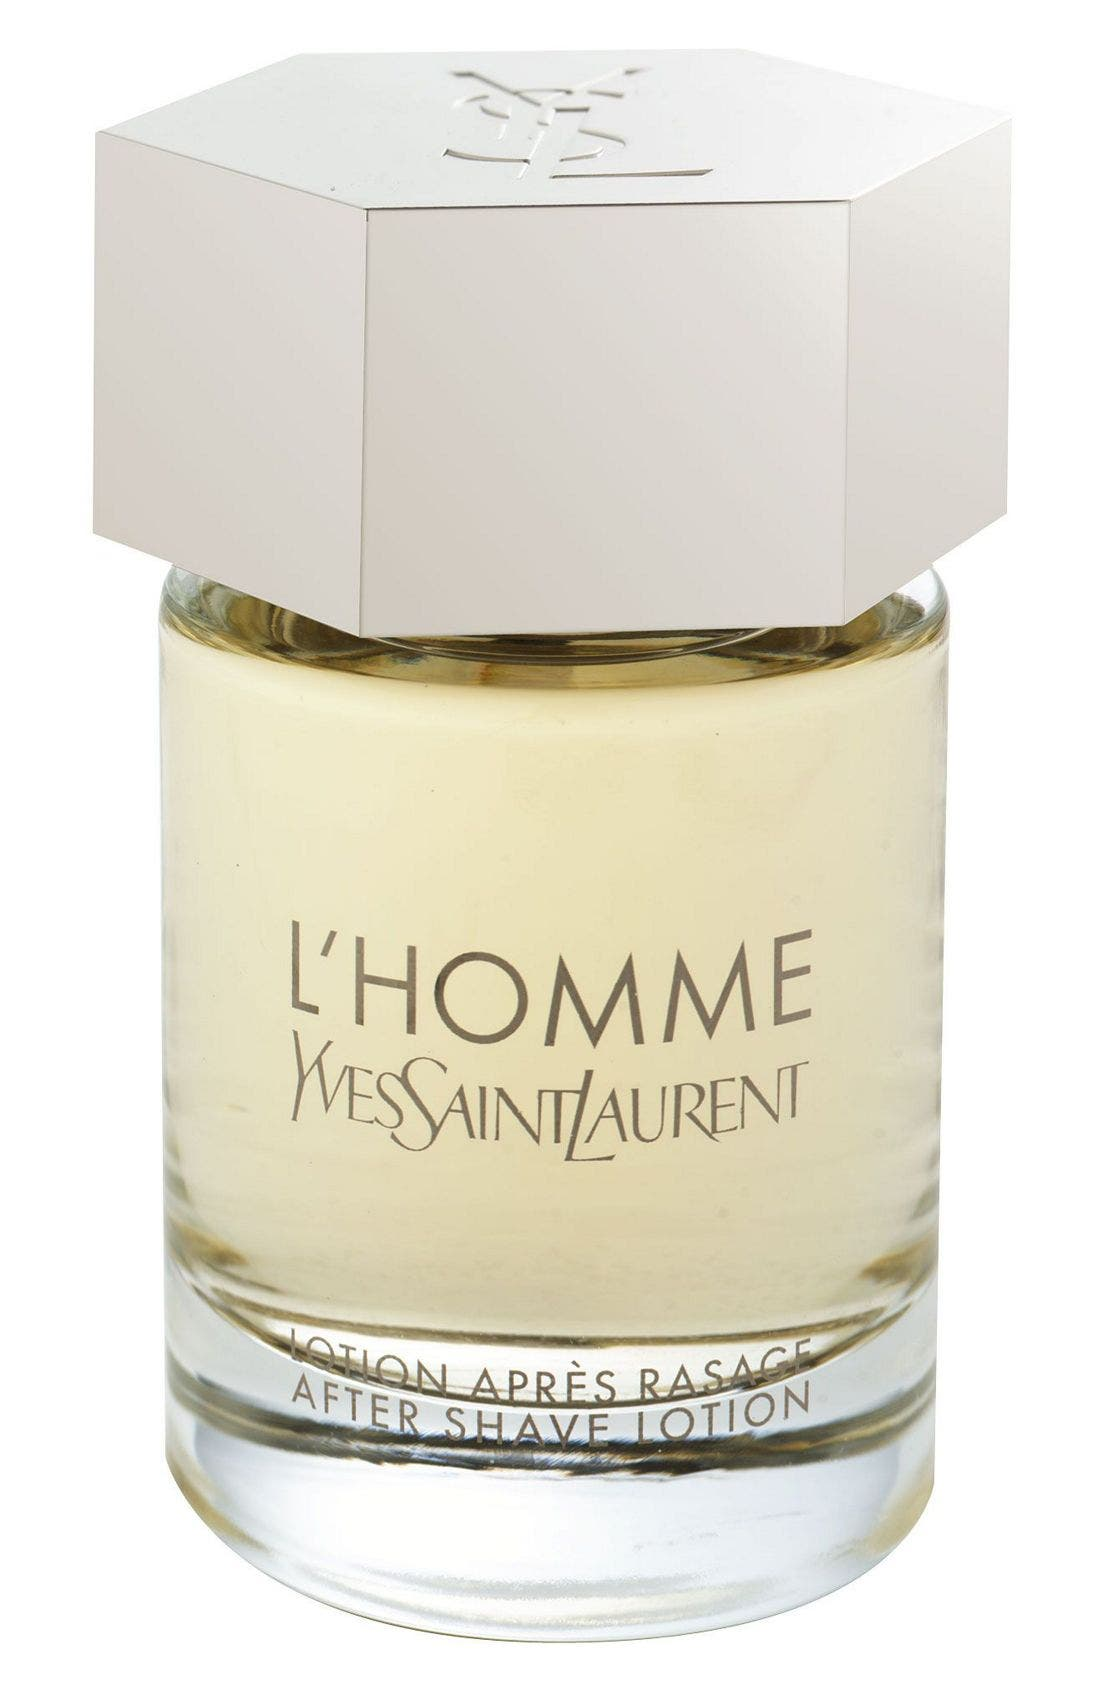 Yves Saint Laurent 'L'Homme' After Shave Lotion